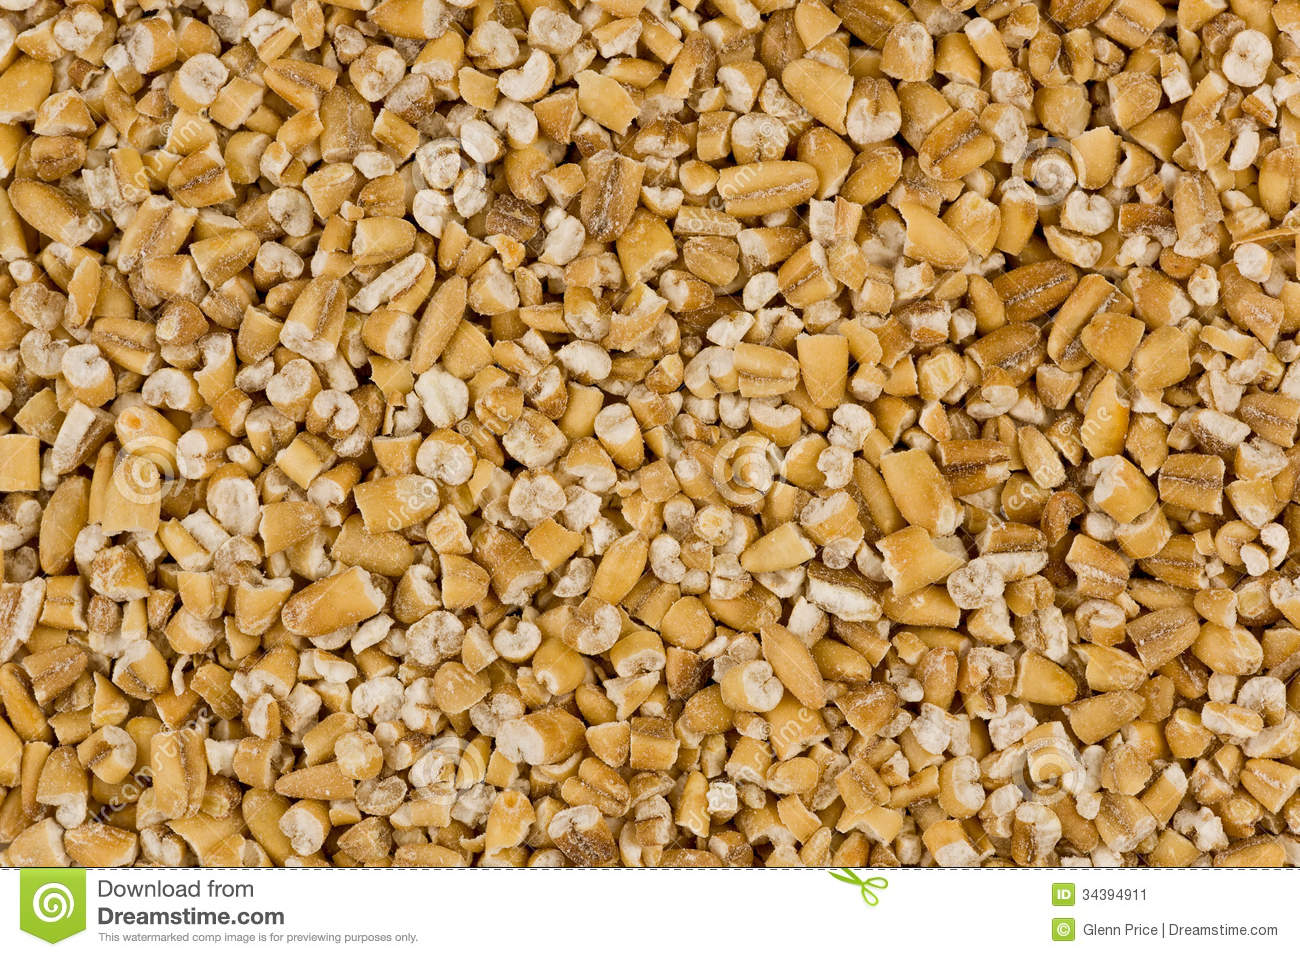 Background texture of steel-cut oats, or irish oats.